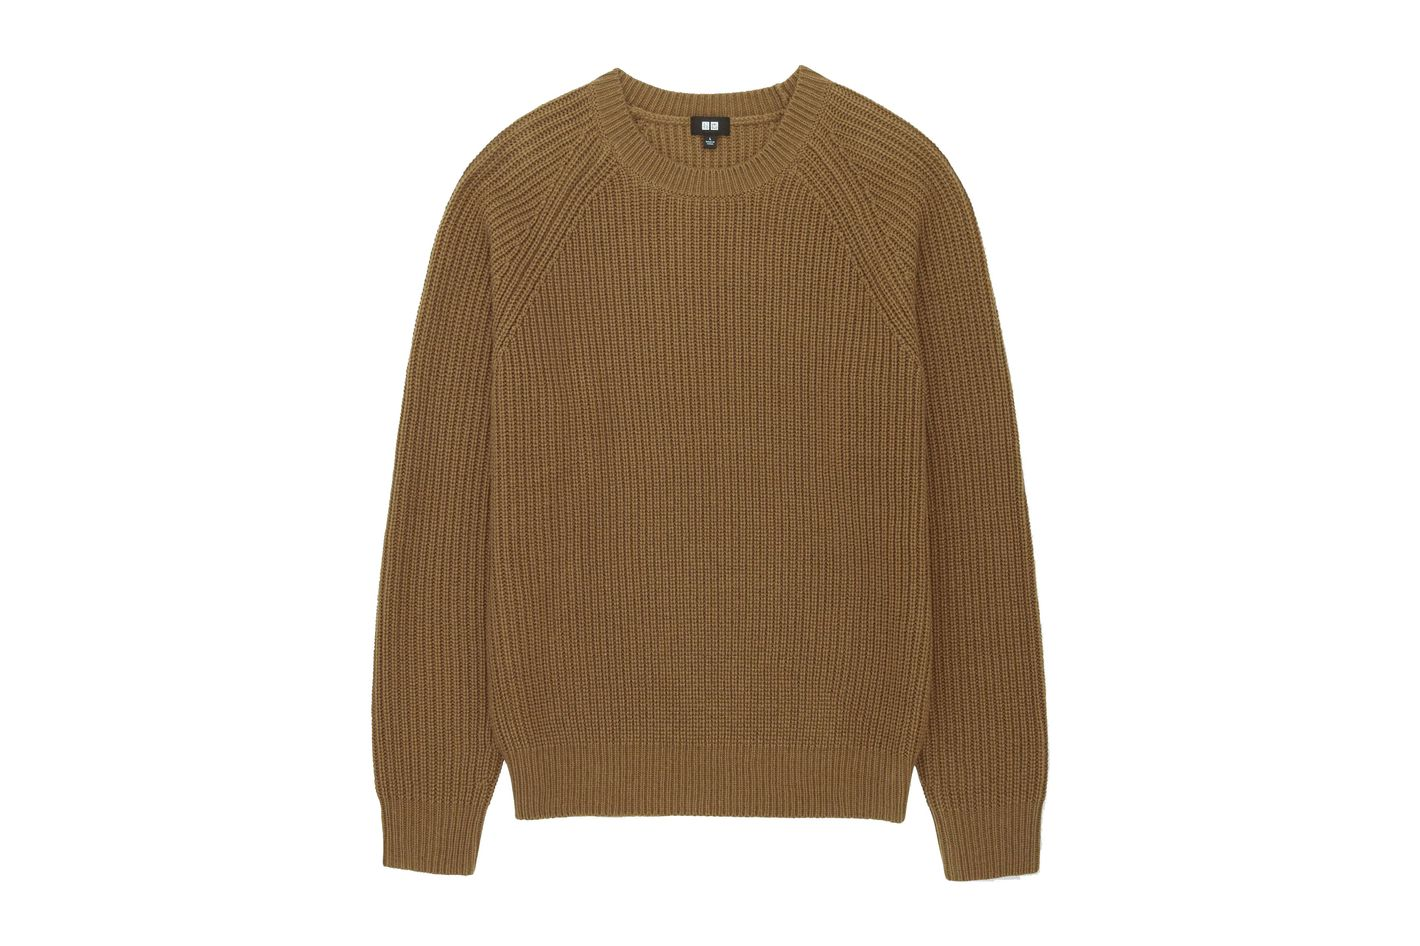 Uniqlo Men's Ribbed Crewneck Long-Sleeve Sweater